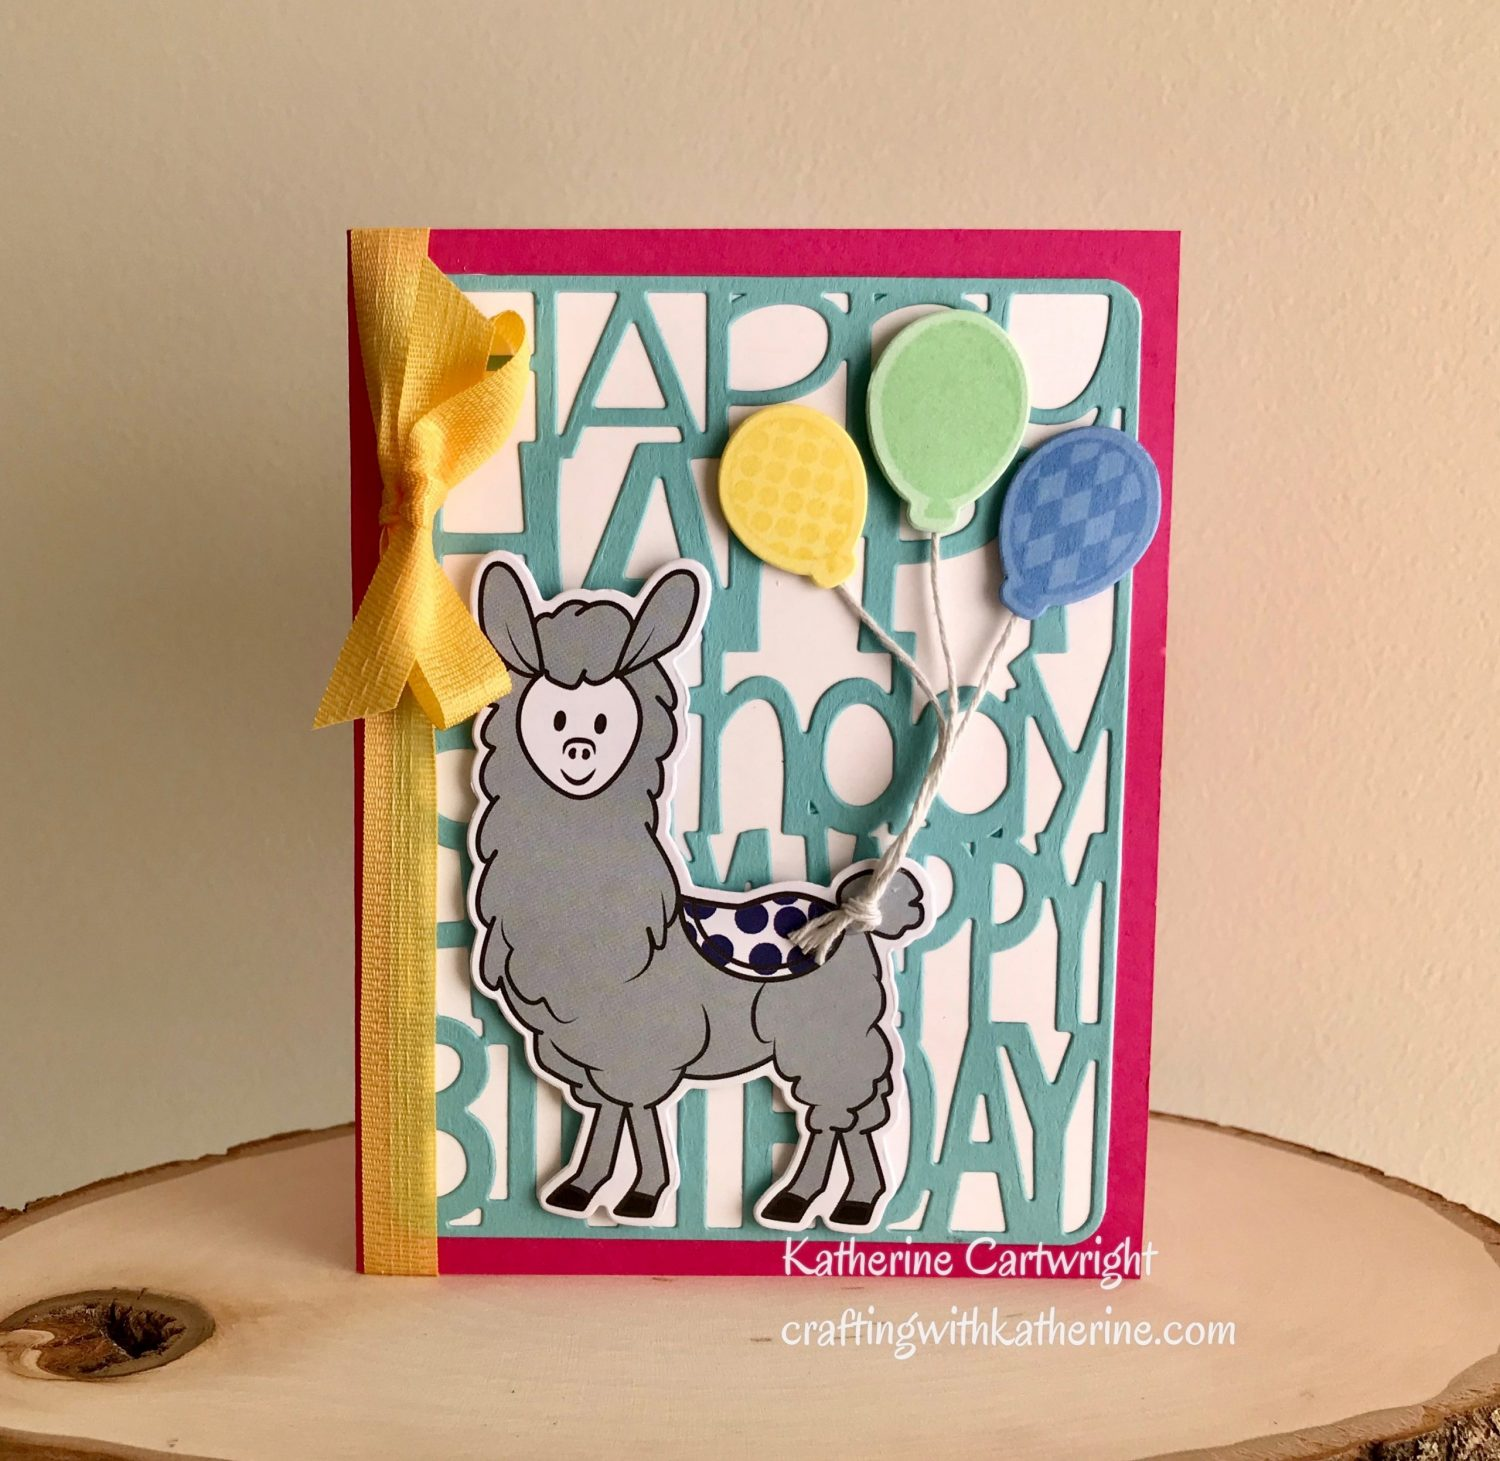 Read more about the article Handmade Card: Llama2stamp Happy Birthday